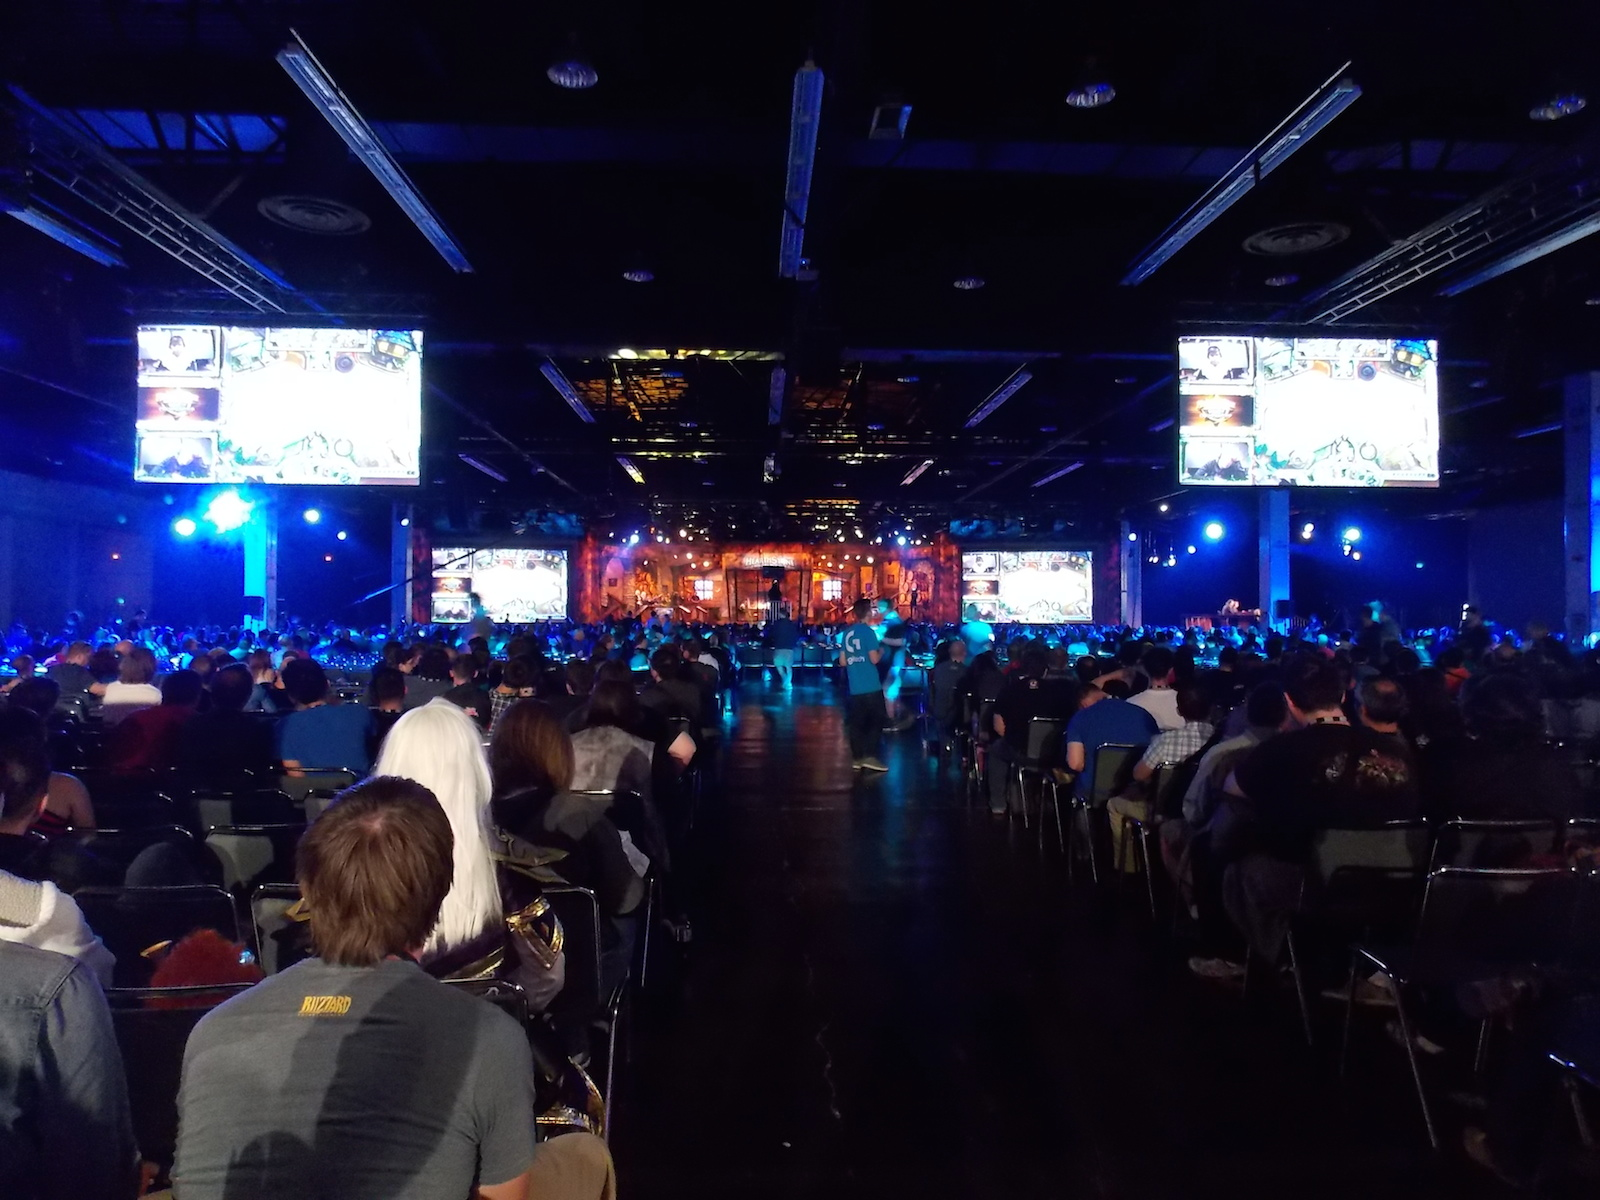 The crowd at the Hearthstone championships at BlizzCon 2015.